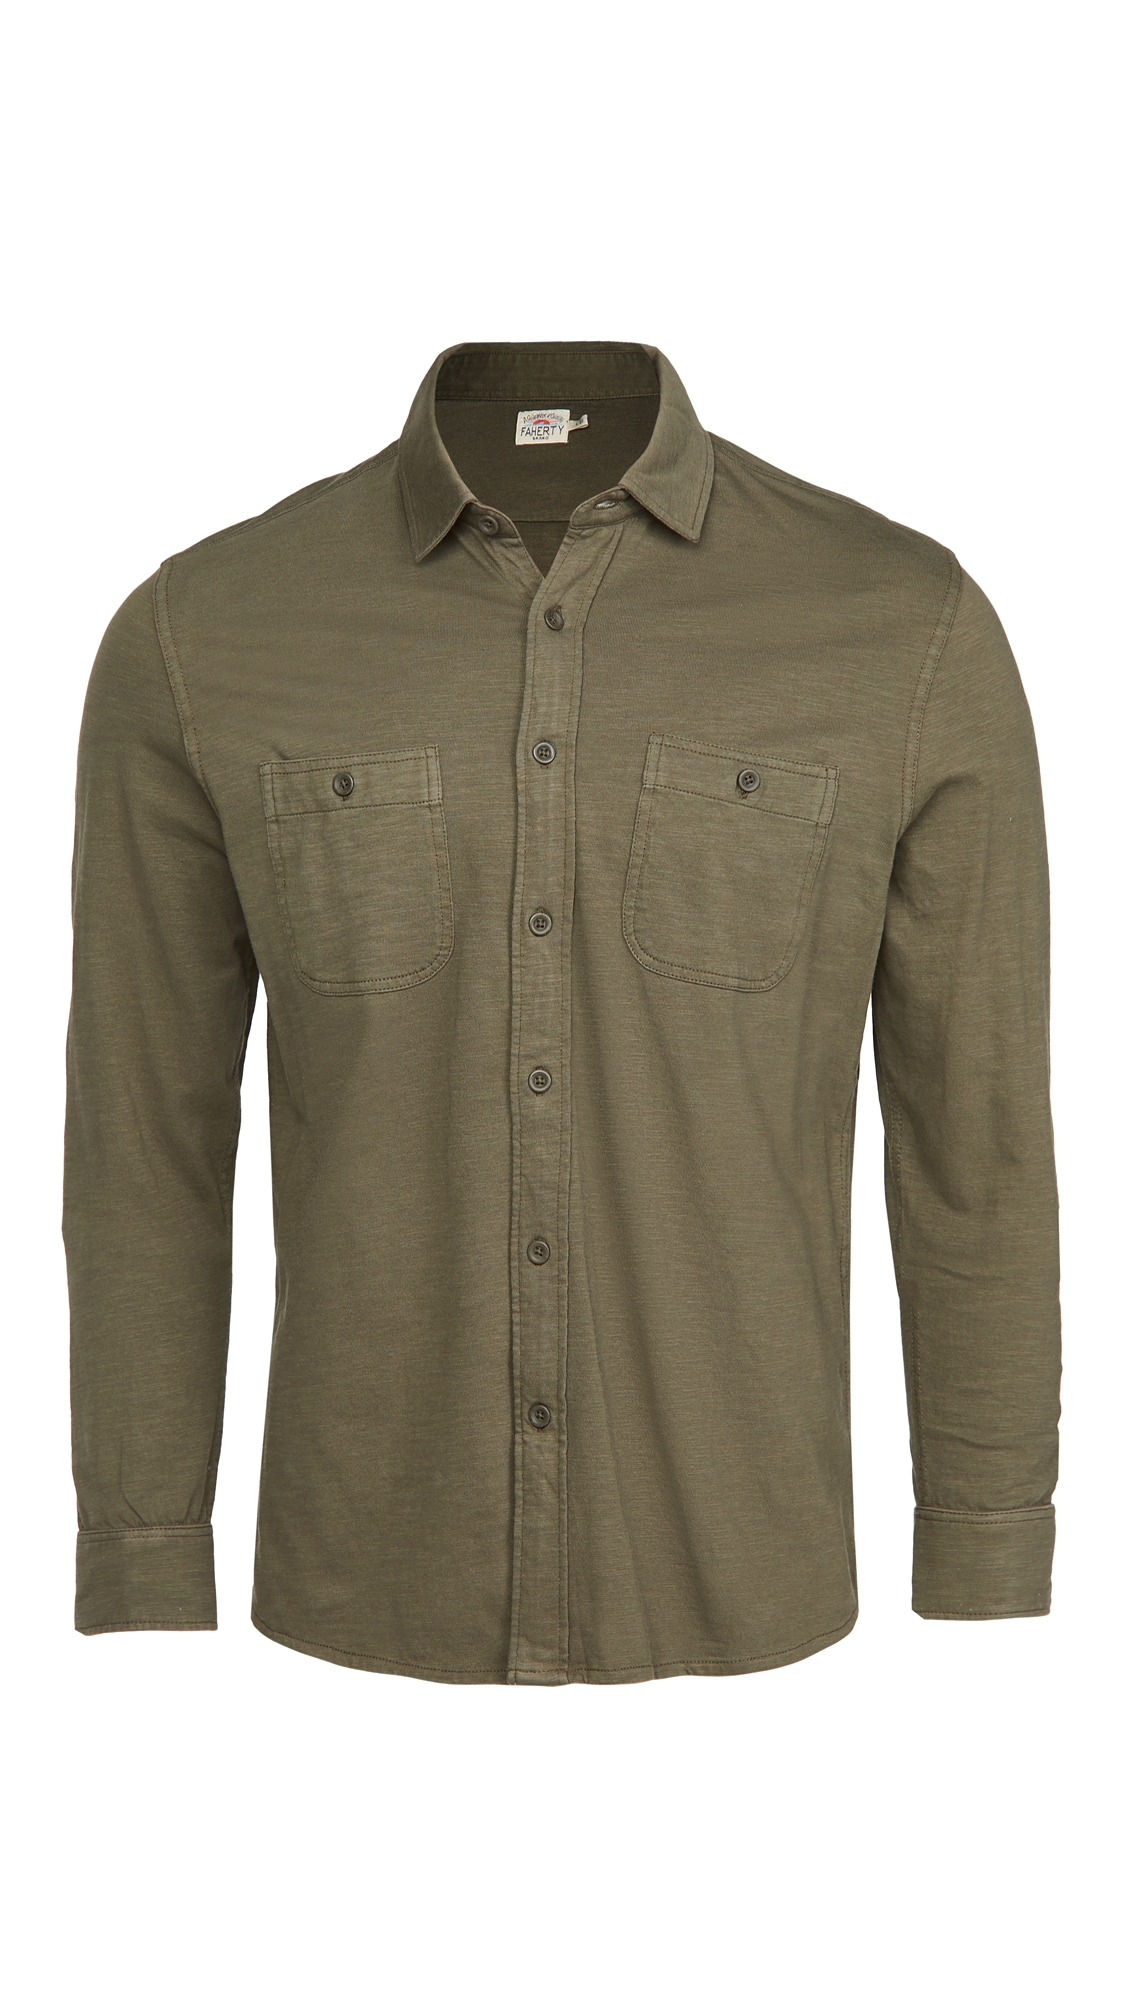 Faherty Knit Seasons Shirt